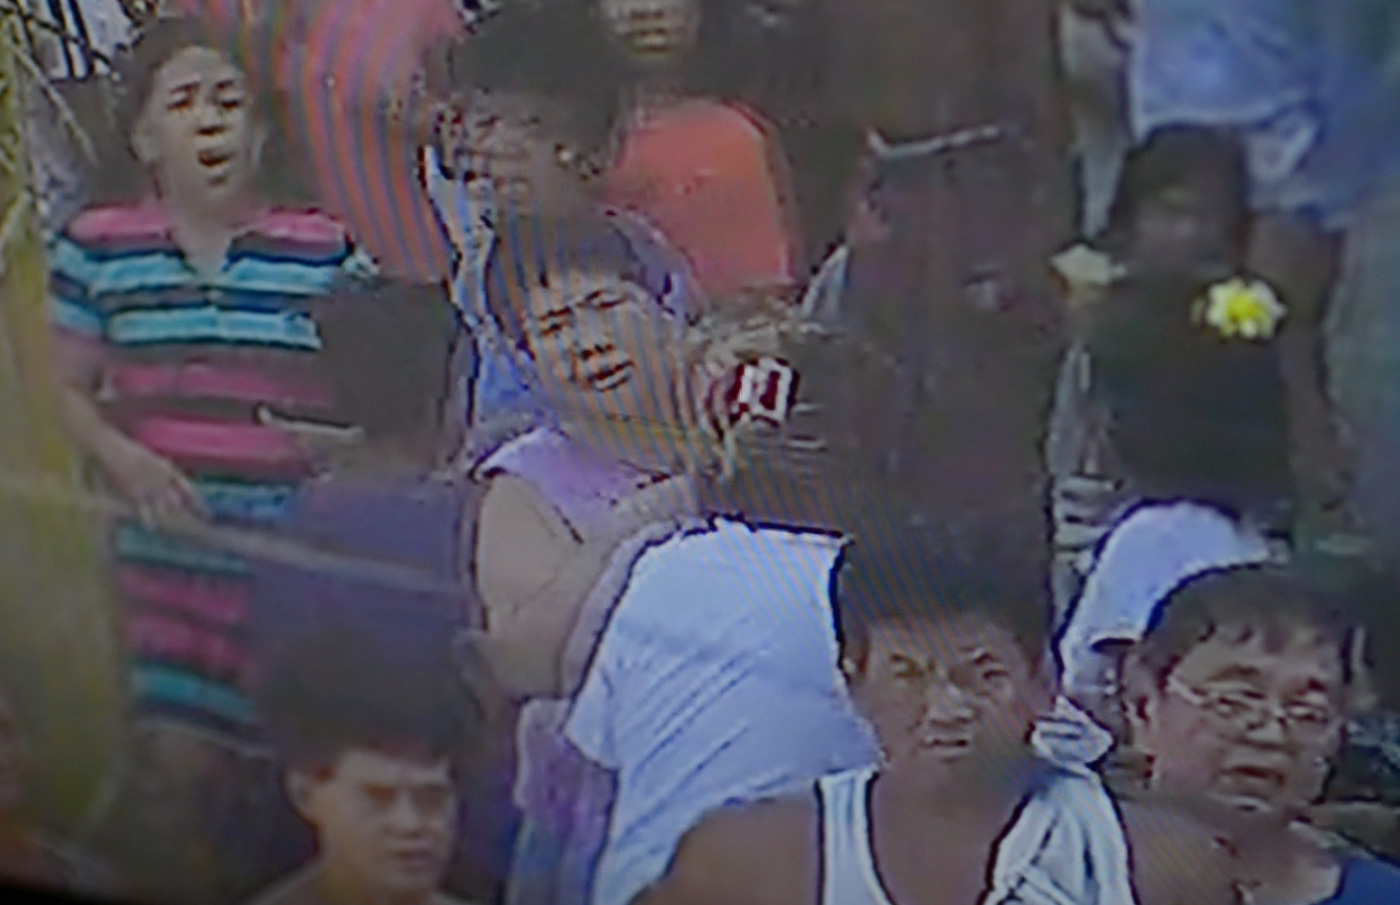 CHAOS. Rosana Brondial is caught in the barangay CCTV, after seeing her 13-year-old son Jayross sprawled on the street. Itu2019s not even a year since she lost an older son. Screen grab from the CCTV of Barangay 103, Pasay City.